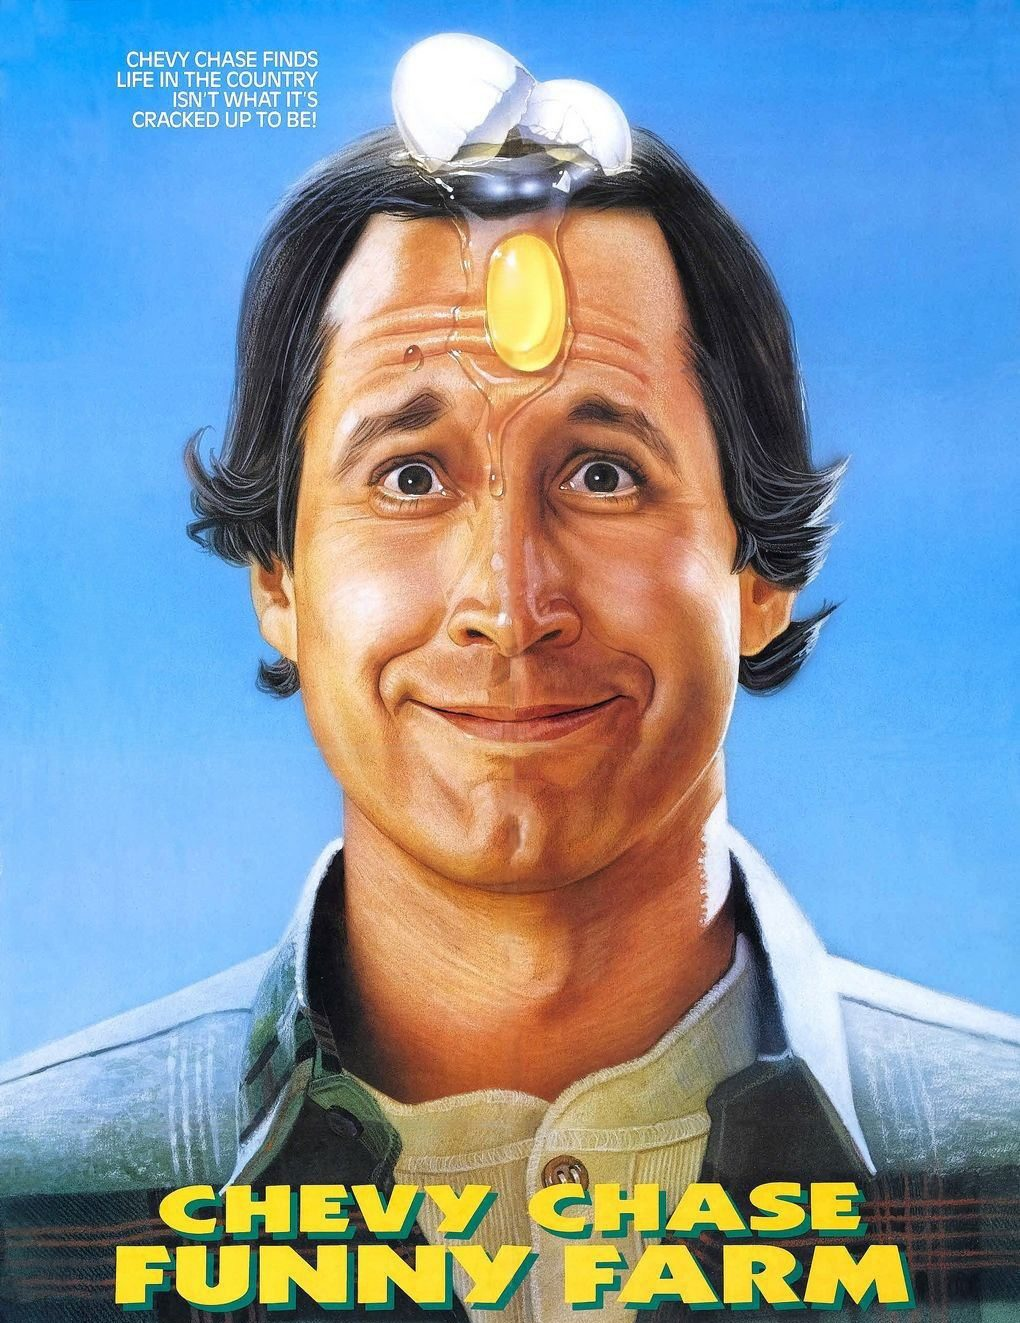 gen 9 e1602753741476 20 Things You Never Knew About Chevy Chase